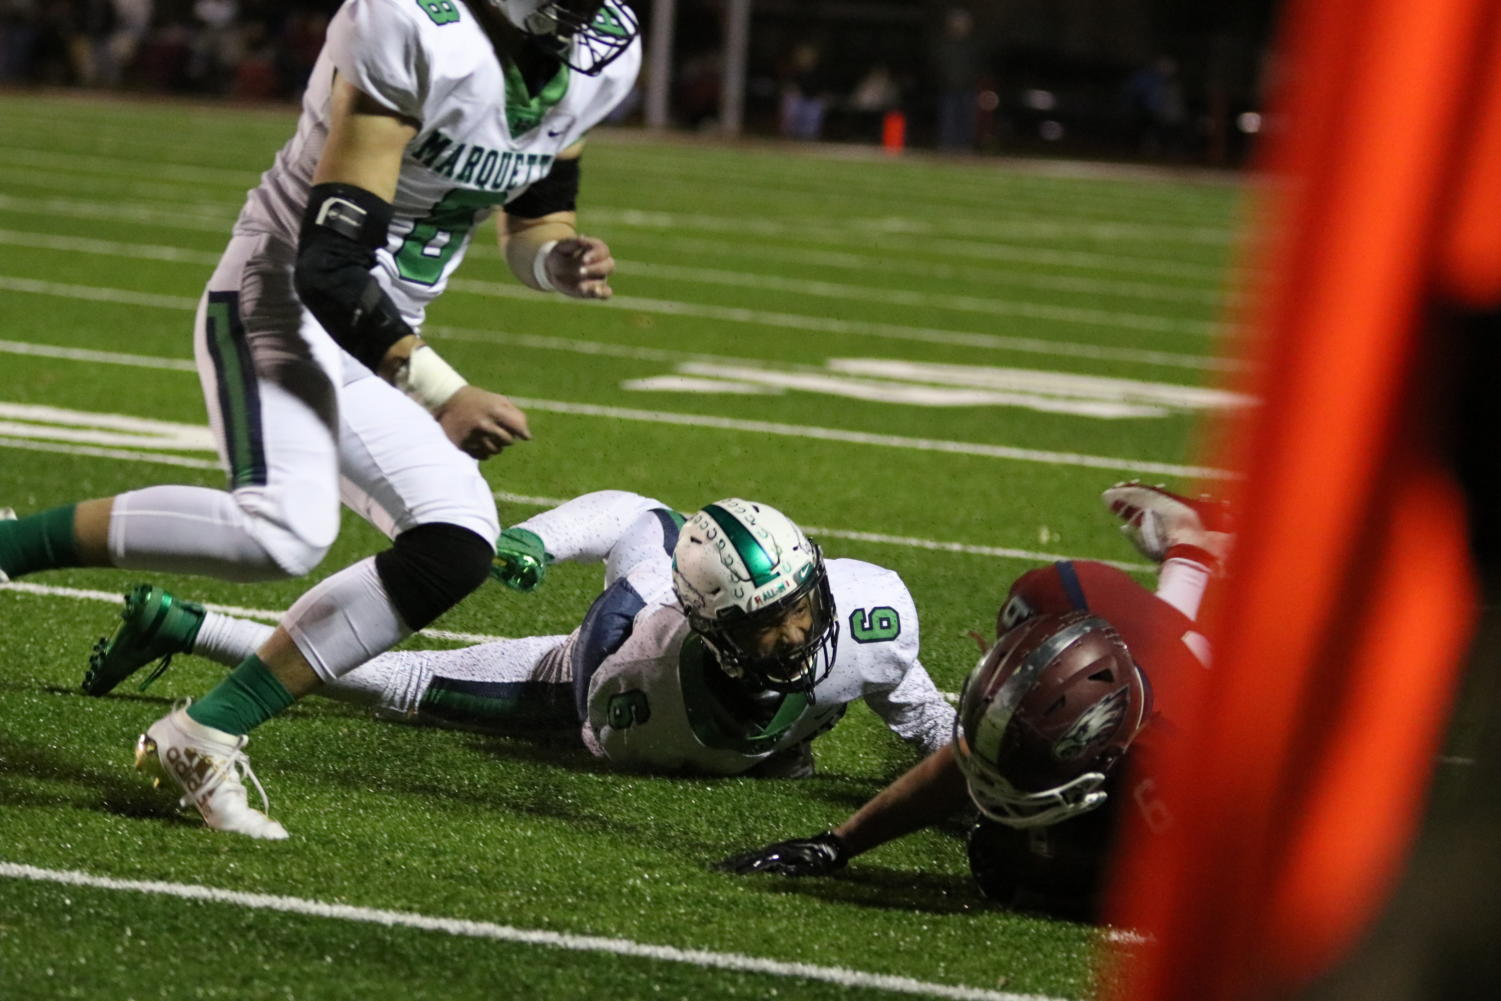 Photo+Gallery%3A+Football+Falls+in+District+Title+Game+at+Joplin